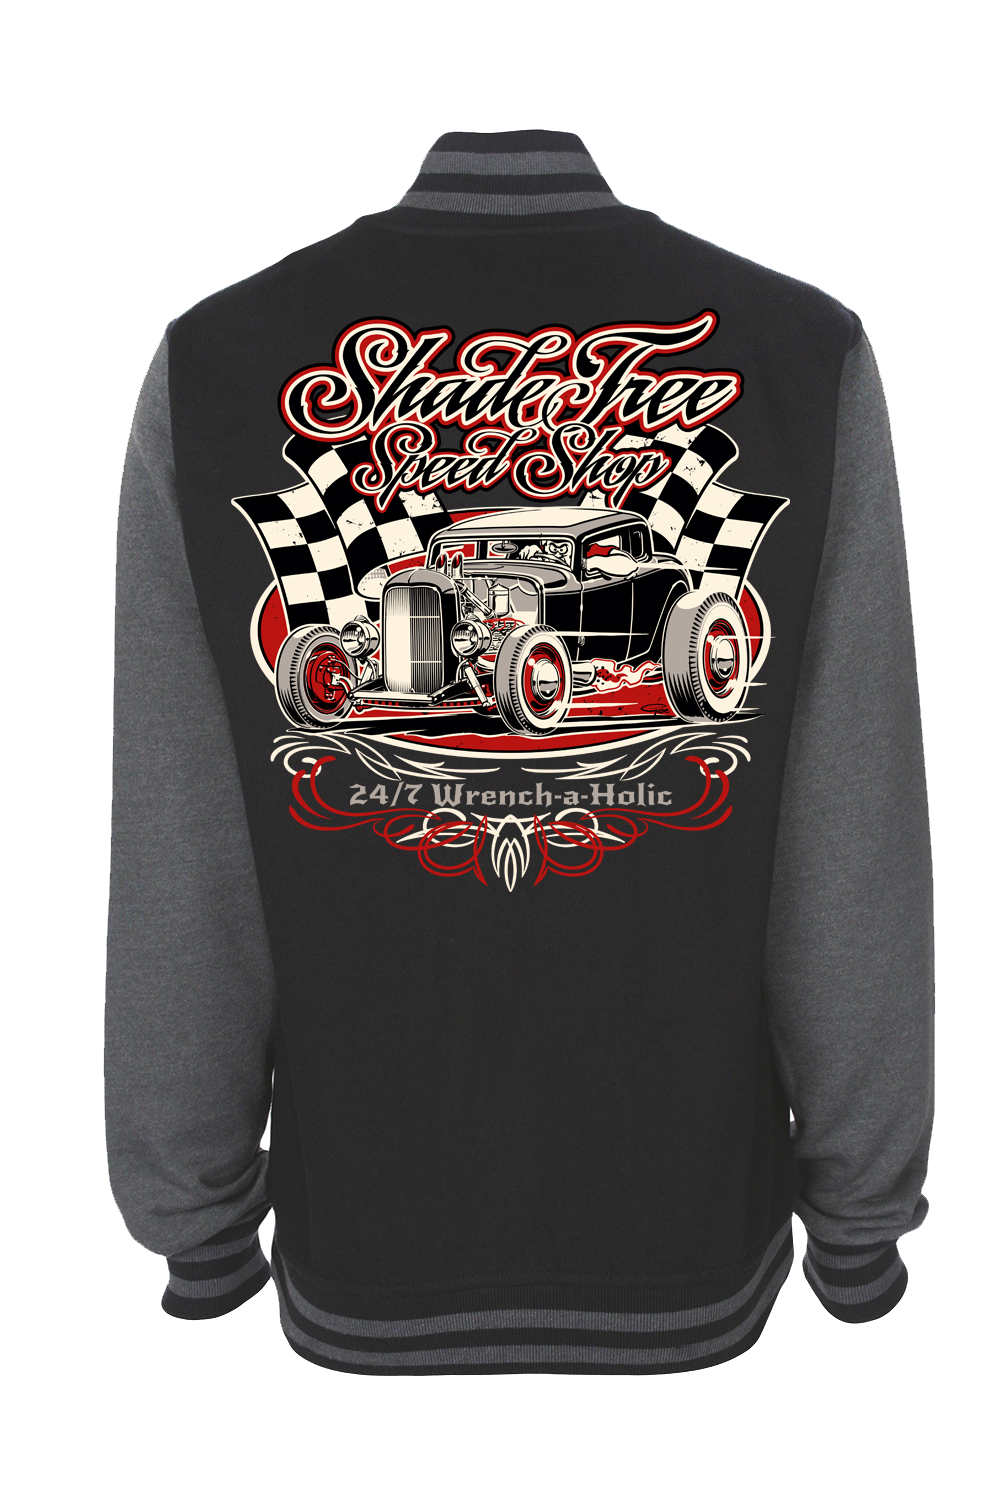 "SHADE TREE SPEED SHOP ""Deuce"" VARSITY JACKET UNISEX by Ger ""Dutch Courage"" Peters artwork"